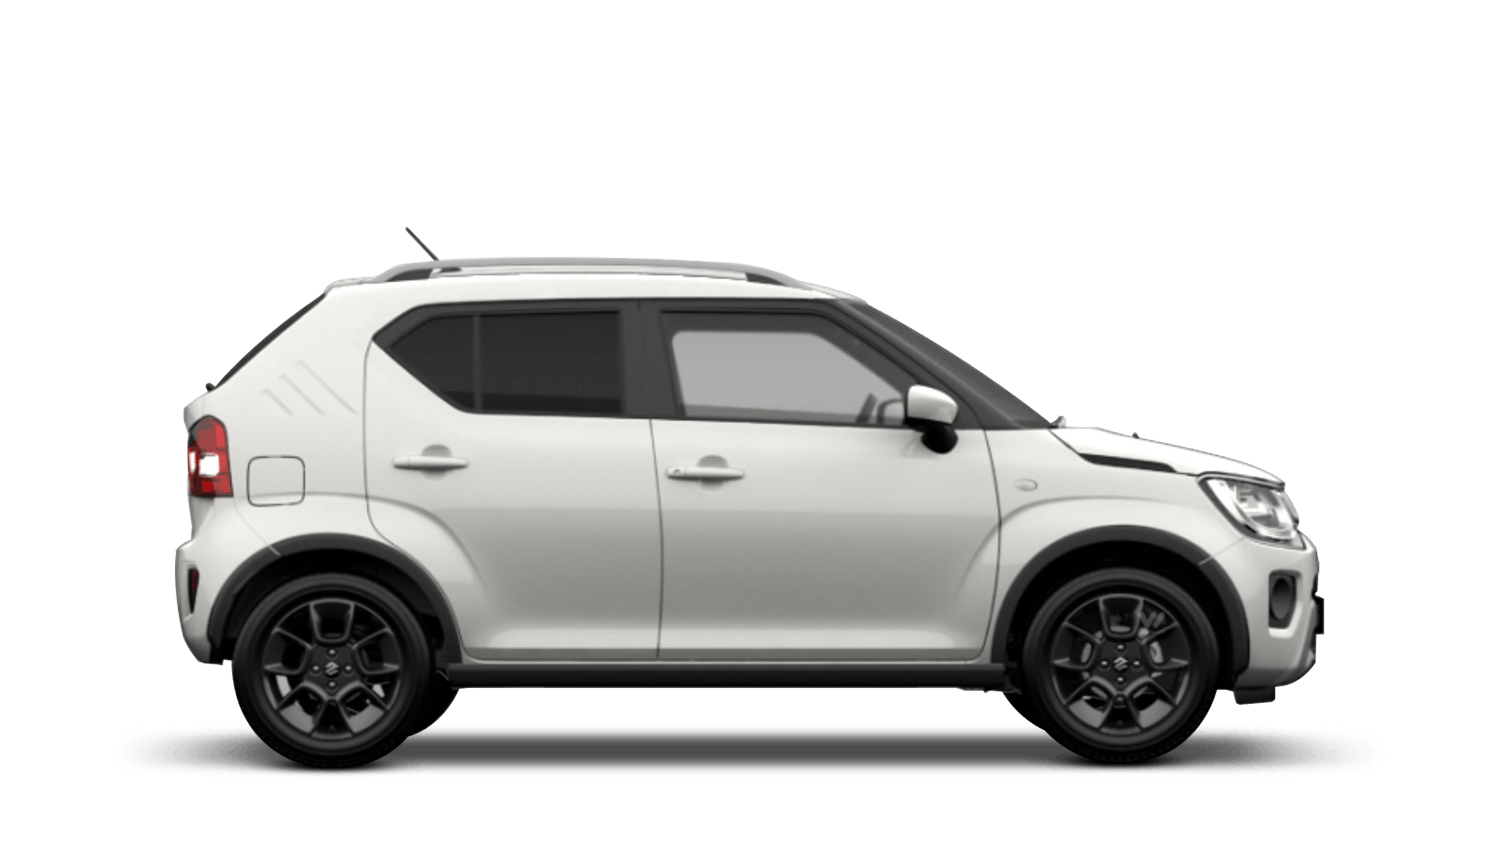 Pure White Pearl with Black Roof (Dual Tone) New Suzuki Ignis